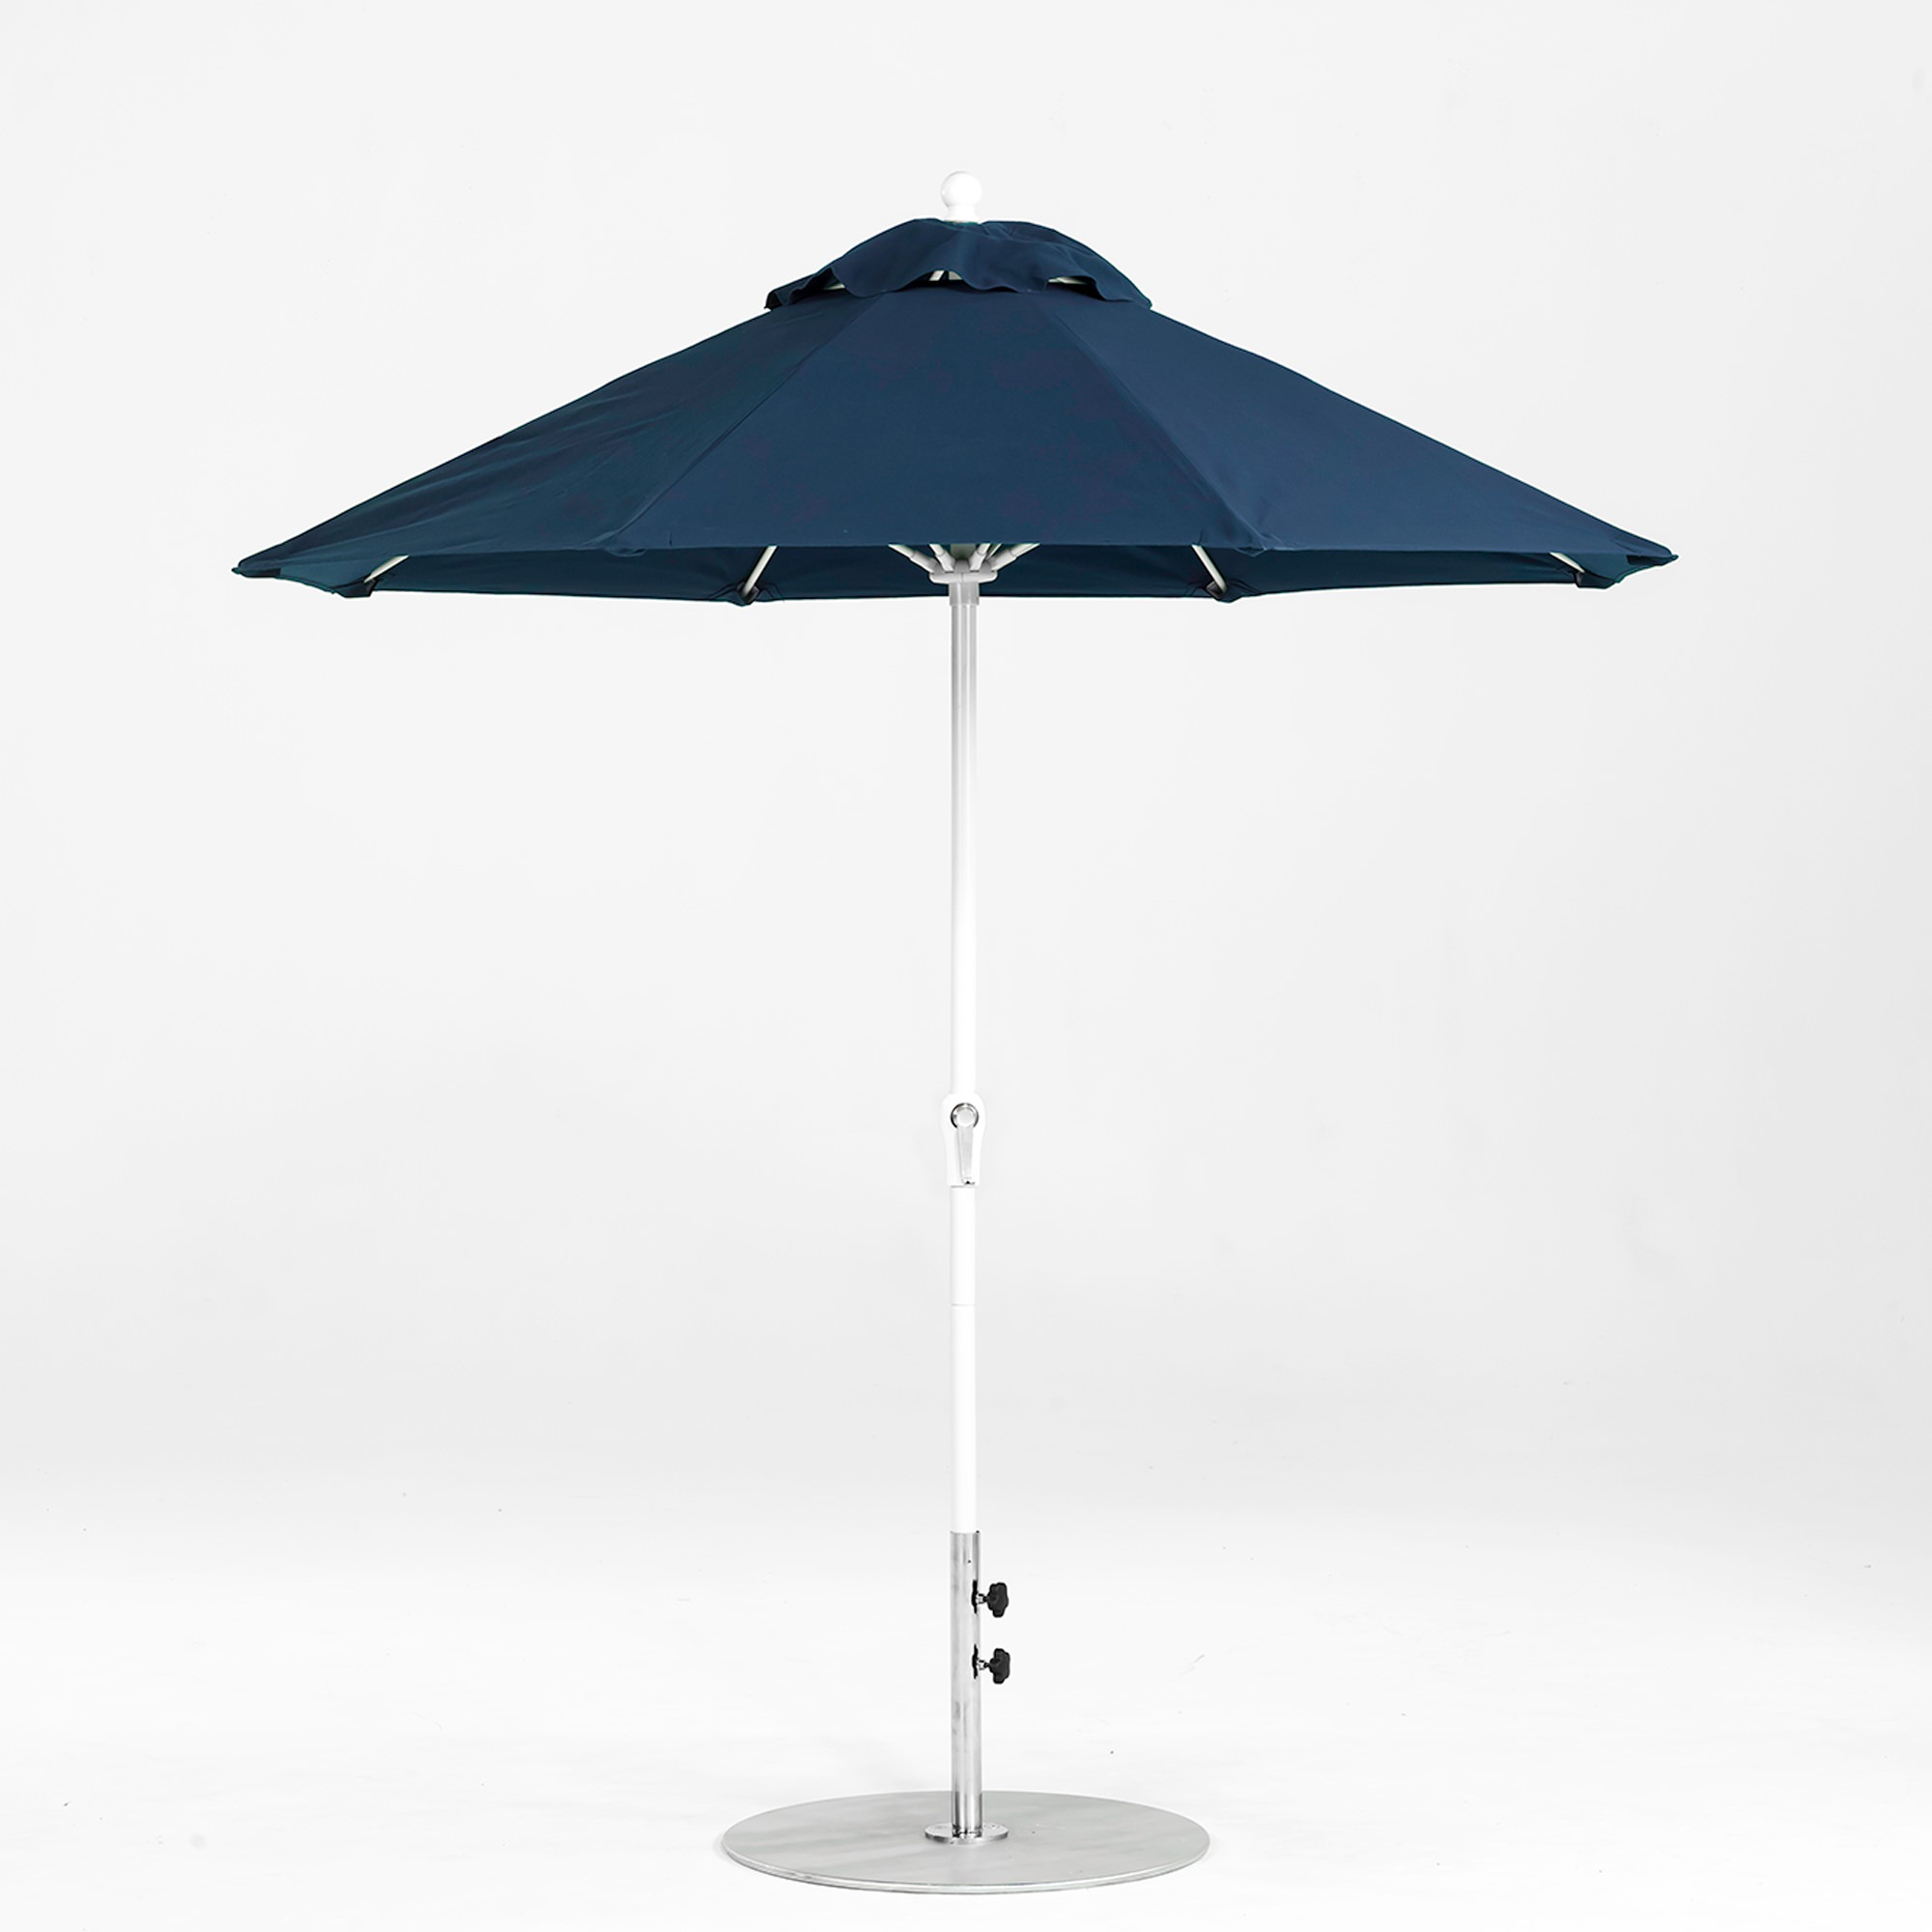 2020 Market Umbrellas For 7.5 Ft. Crank Lift Fiberglass Market Umbrella With White Pole (Gallery 6 of 20)